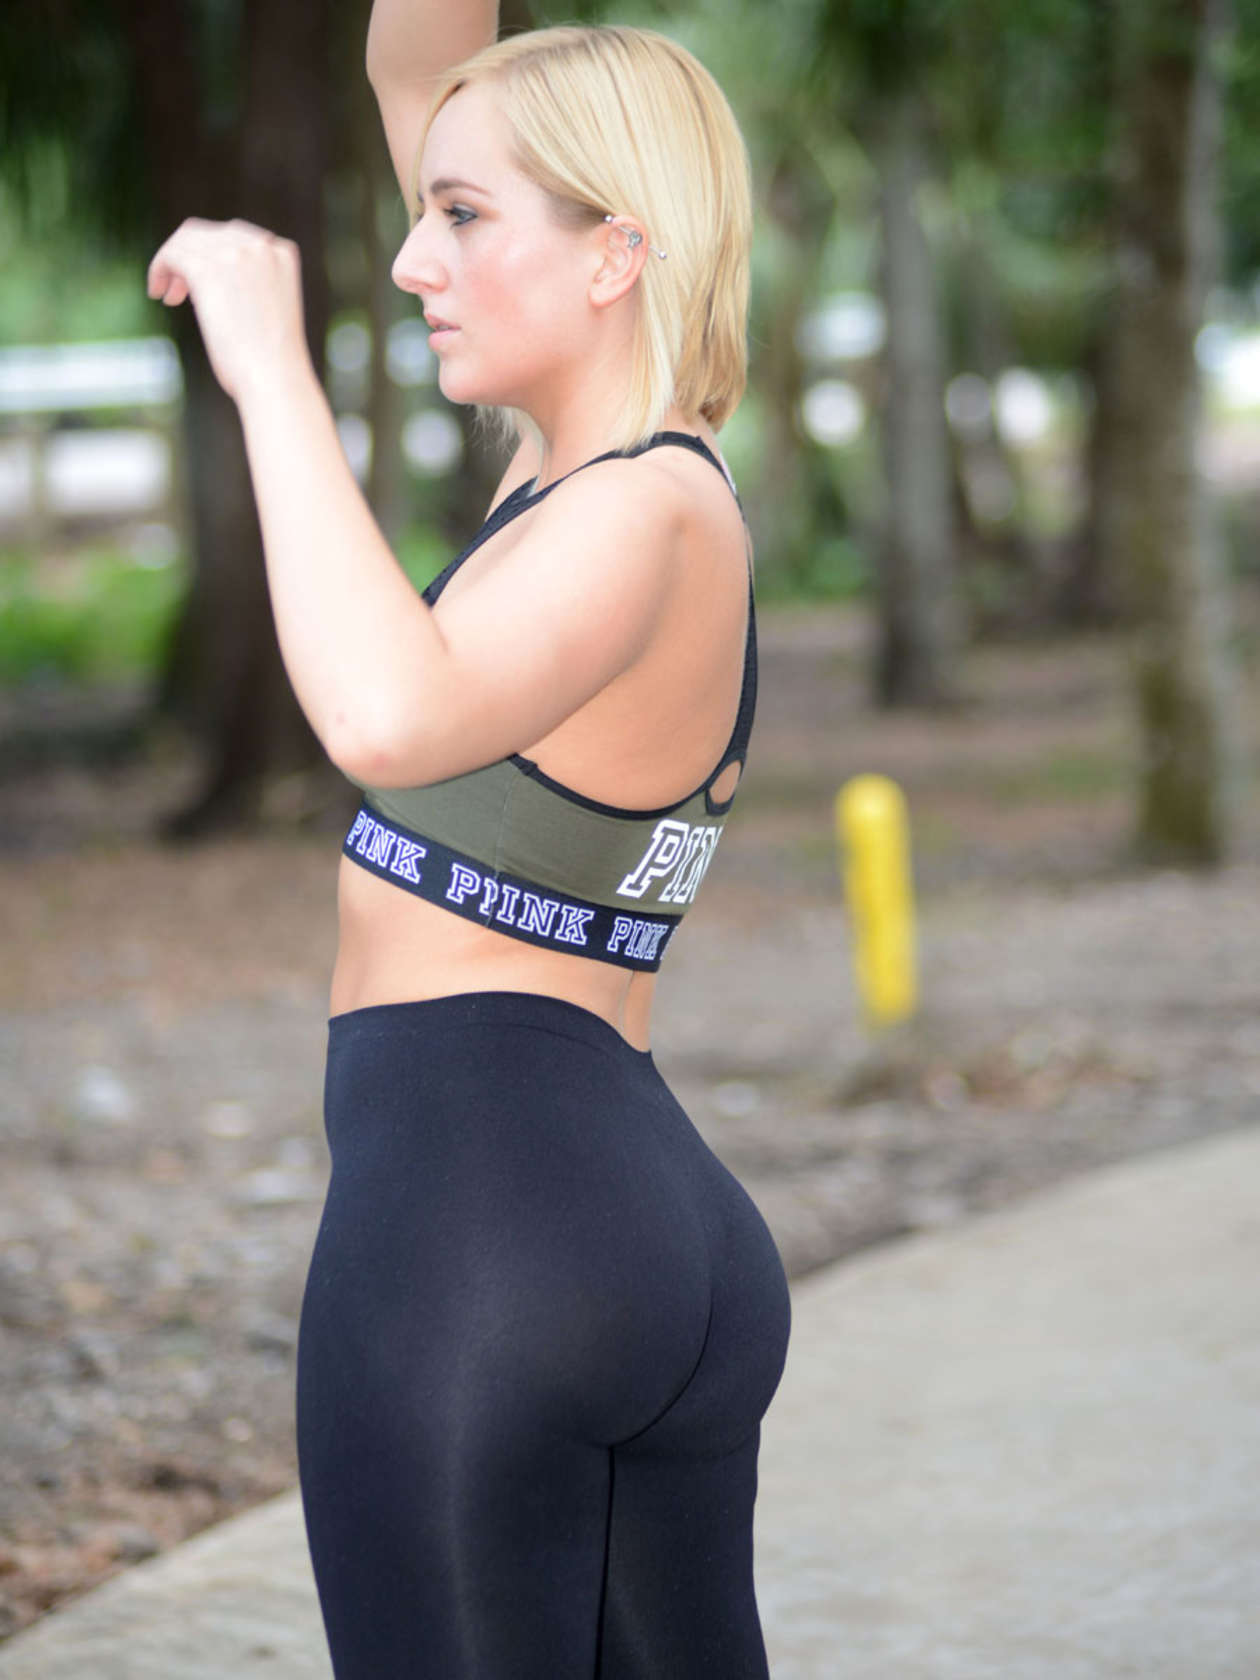 Cum on leggins se te perdio algo dice la morra 1era parte - 2 part 4